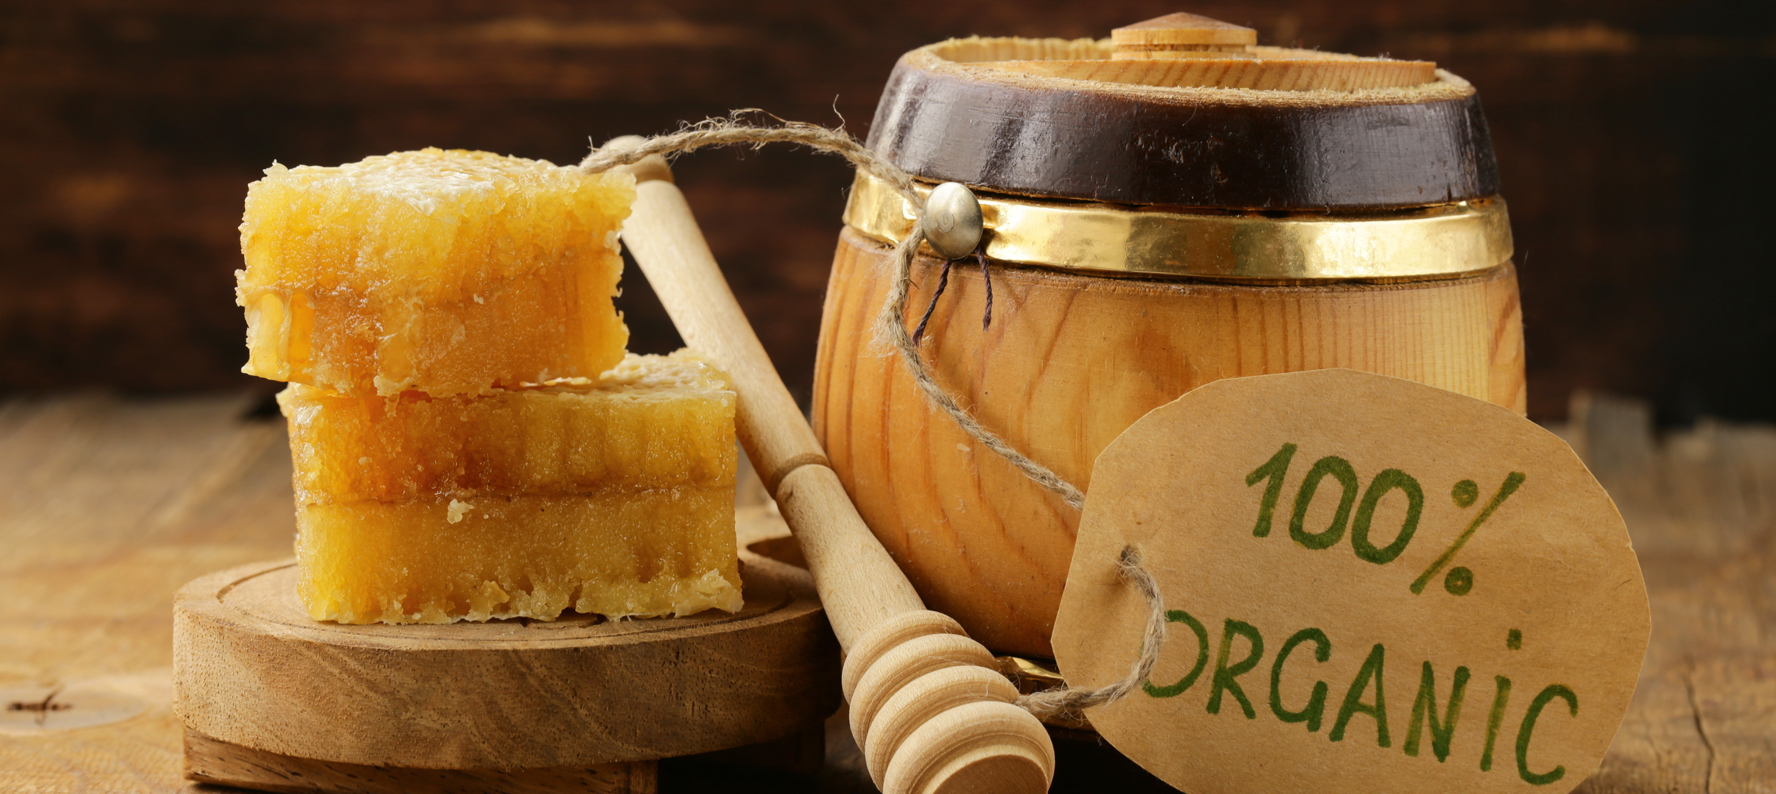 Beeswax is used in natural skin care products for its protectant and Antibacterial properties.